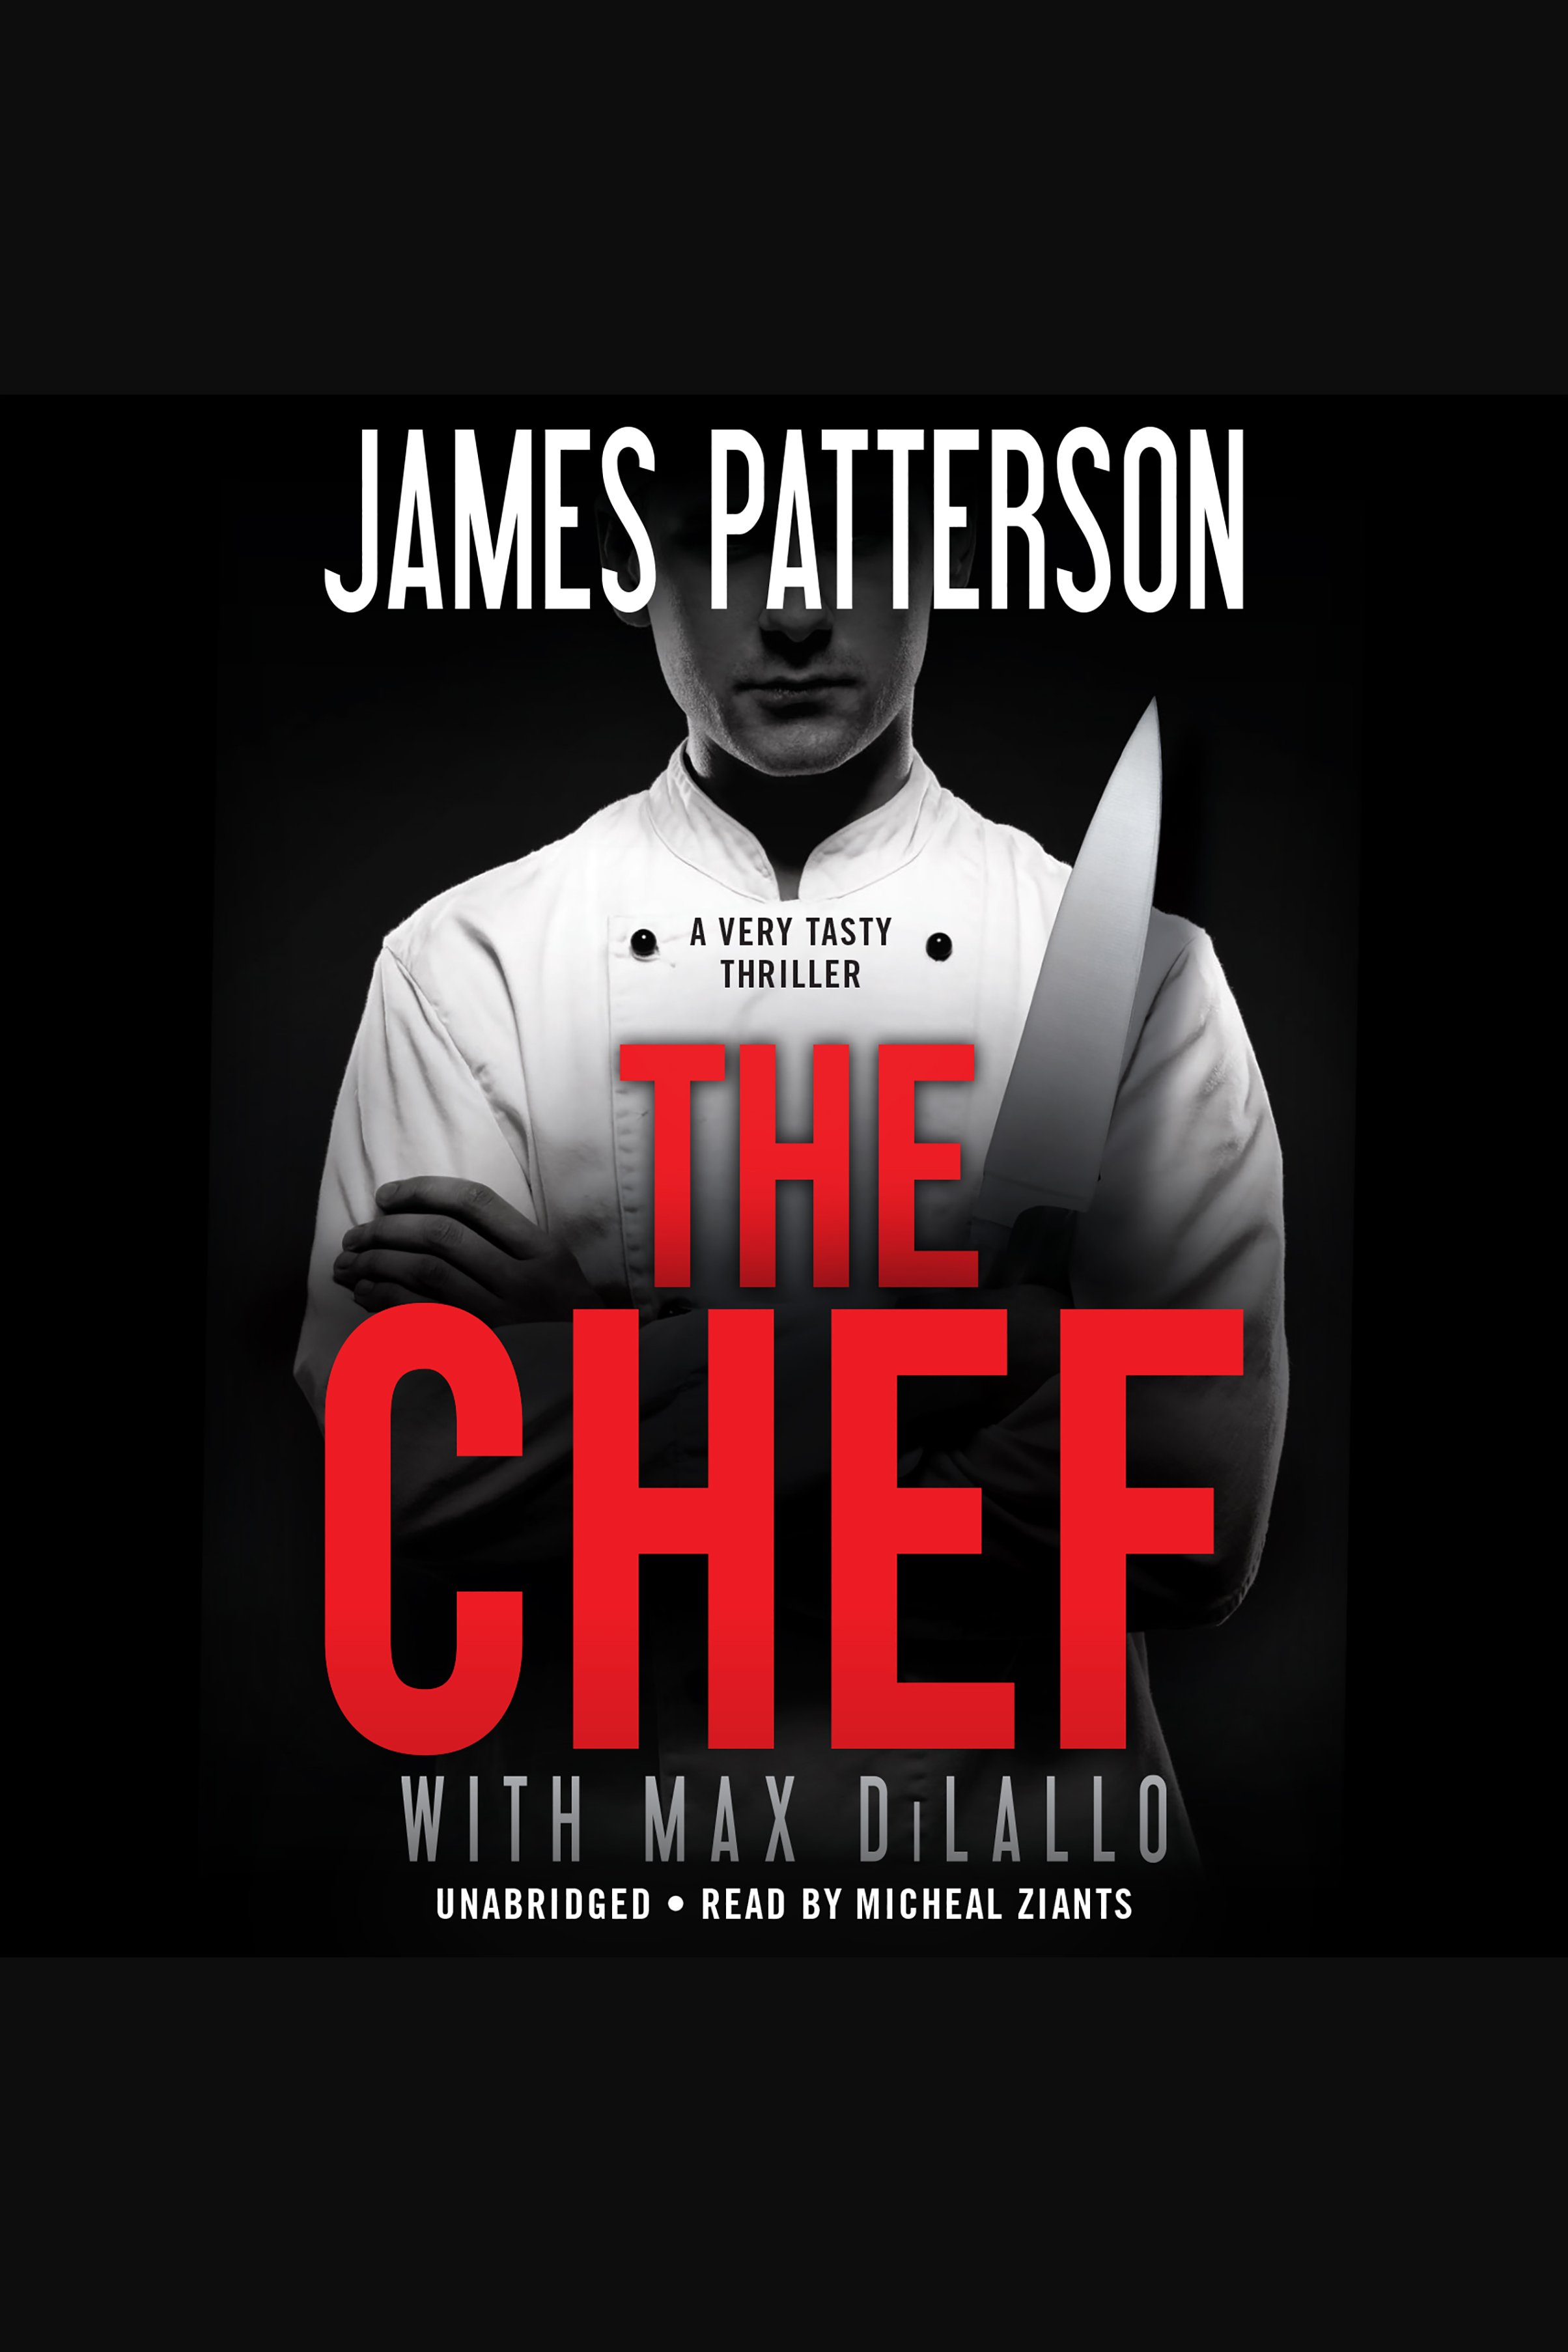 Chef, The A Very Tasty Thriller